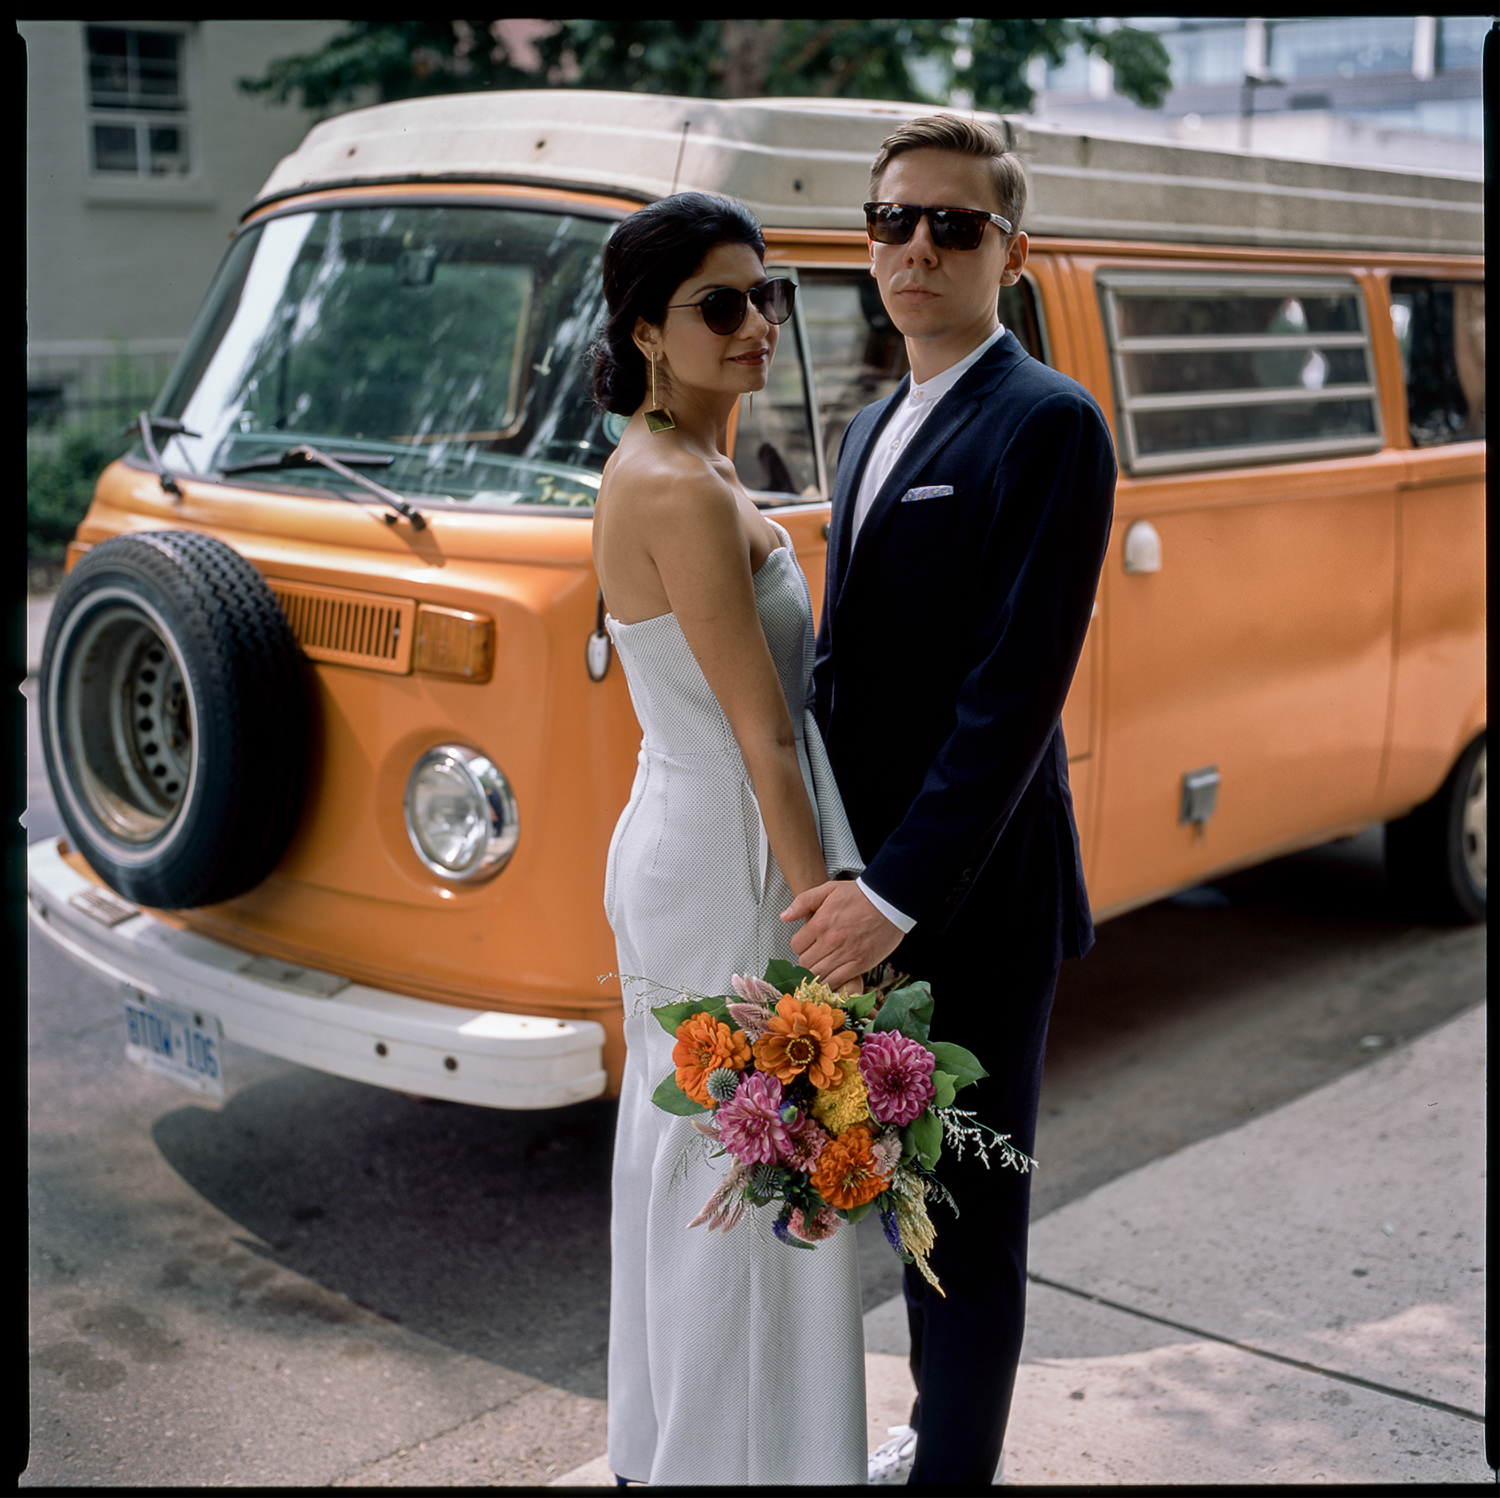 Best-analog-film-wedding-photographers-Toronto-Ontario-Best-Wedding-Photography-Analog-Film-Hasselblad-501cm-Fuji-400h-Vintage-VW-Van-1970s-Bride-white-jumpsuit-Style.jpg